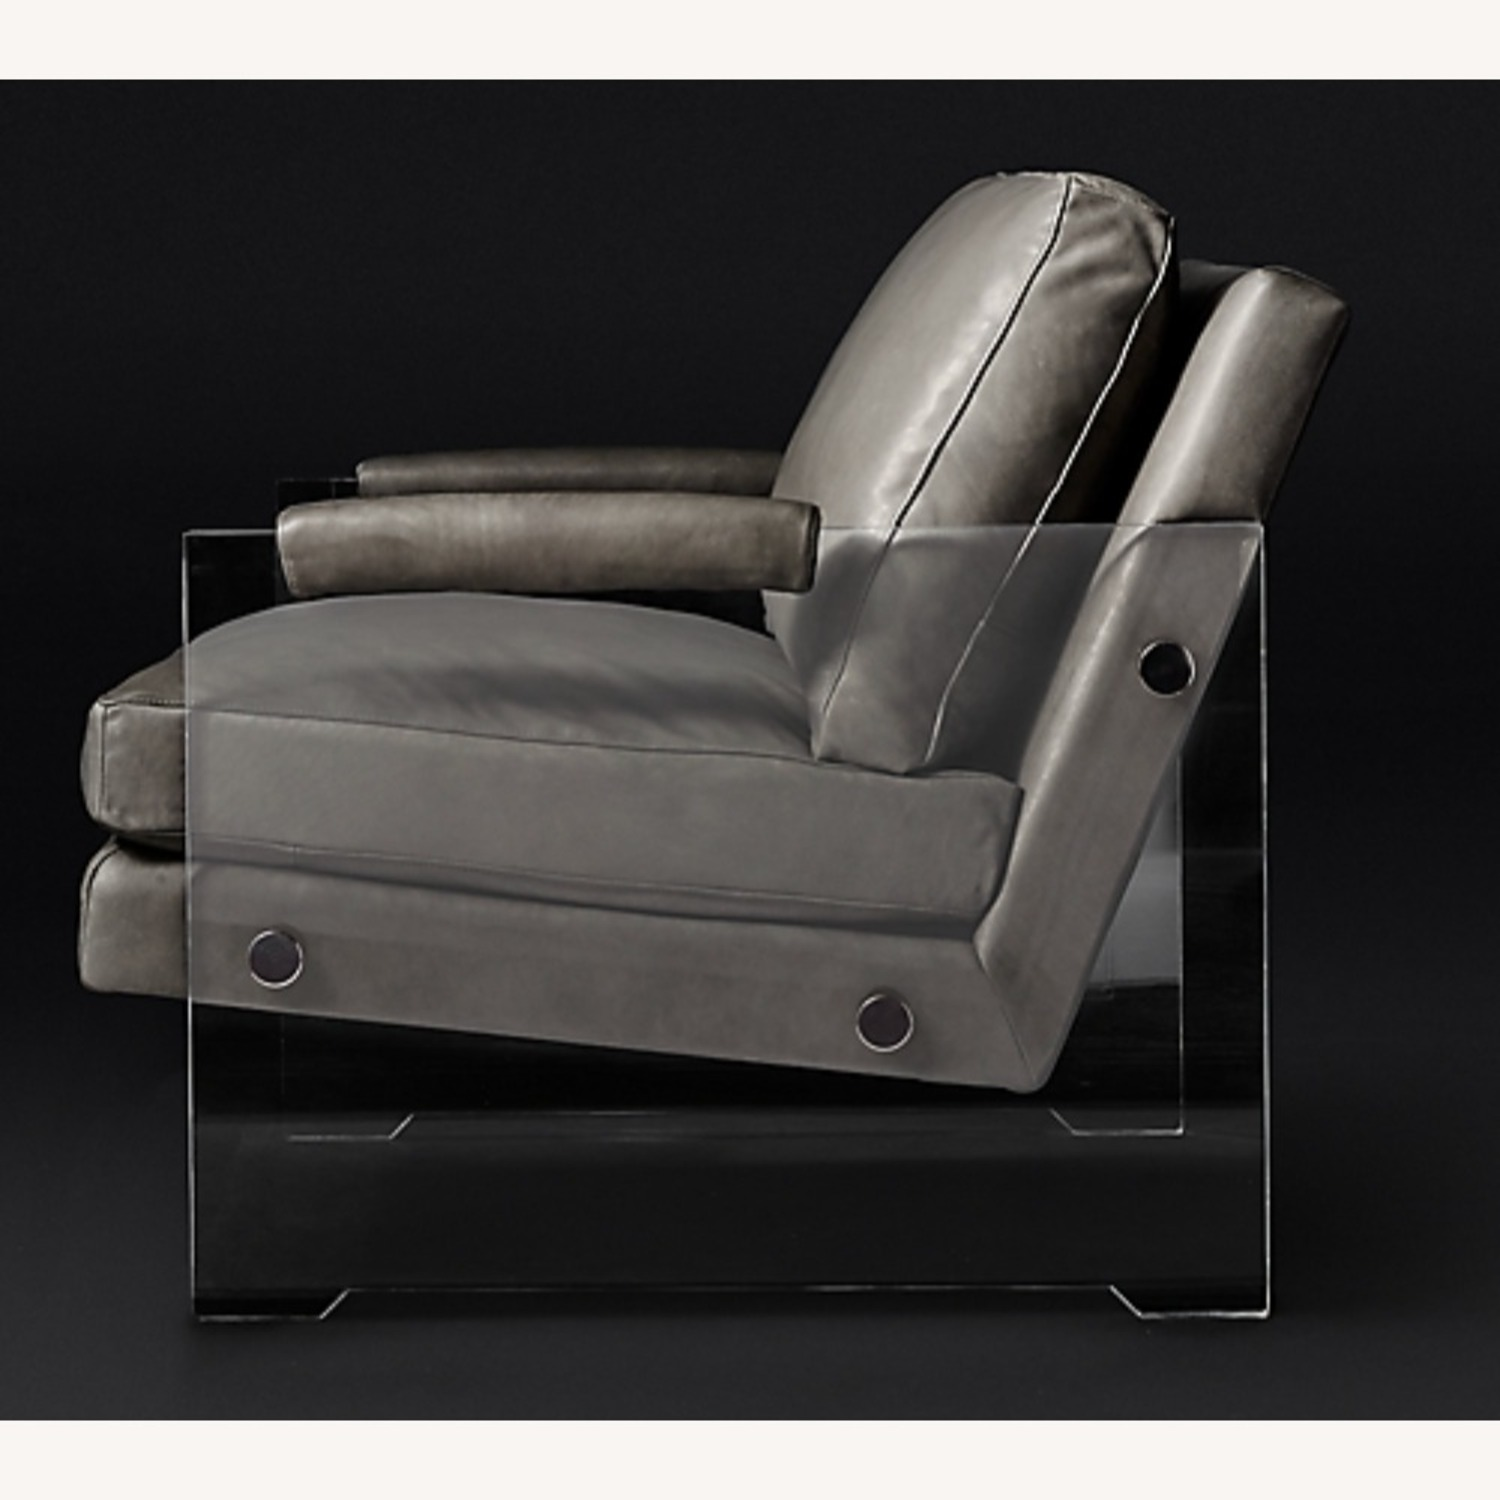 Restoration Hardware Leather Luca Chair - image-7